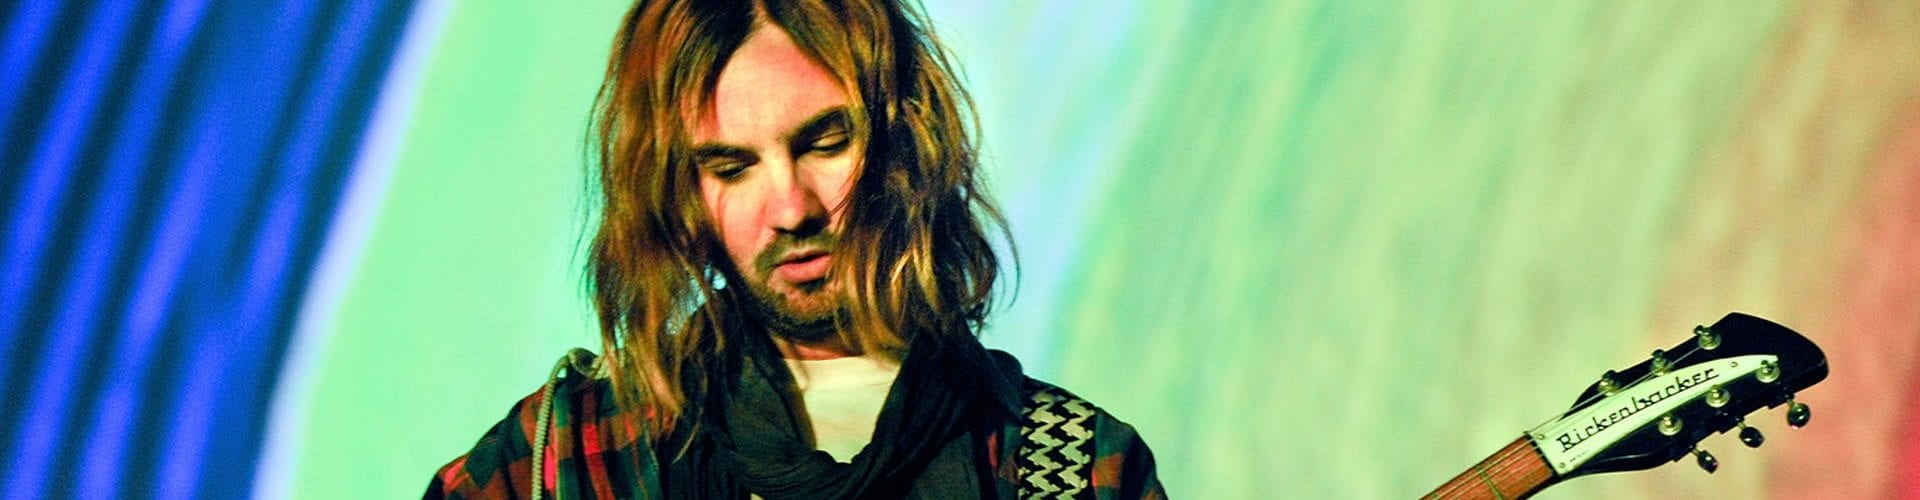 Tame Impala Extend North American Tour This Fall